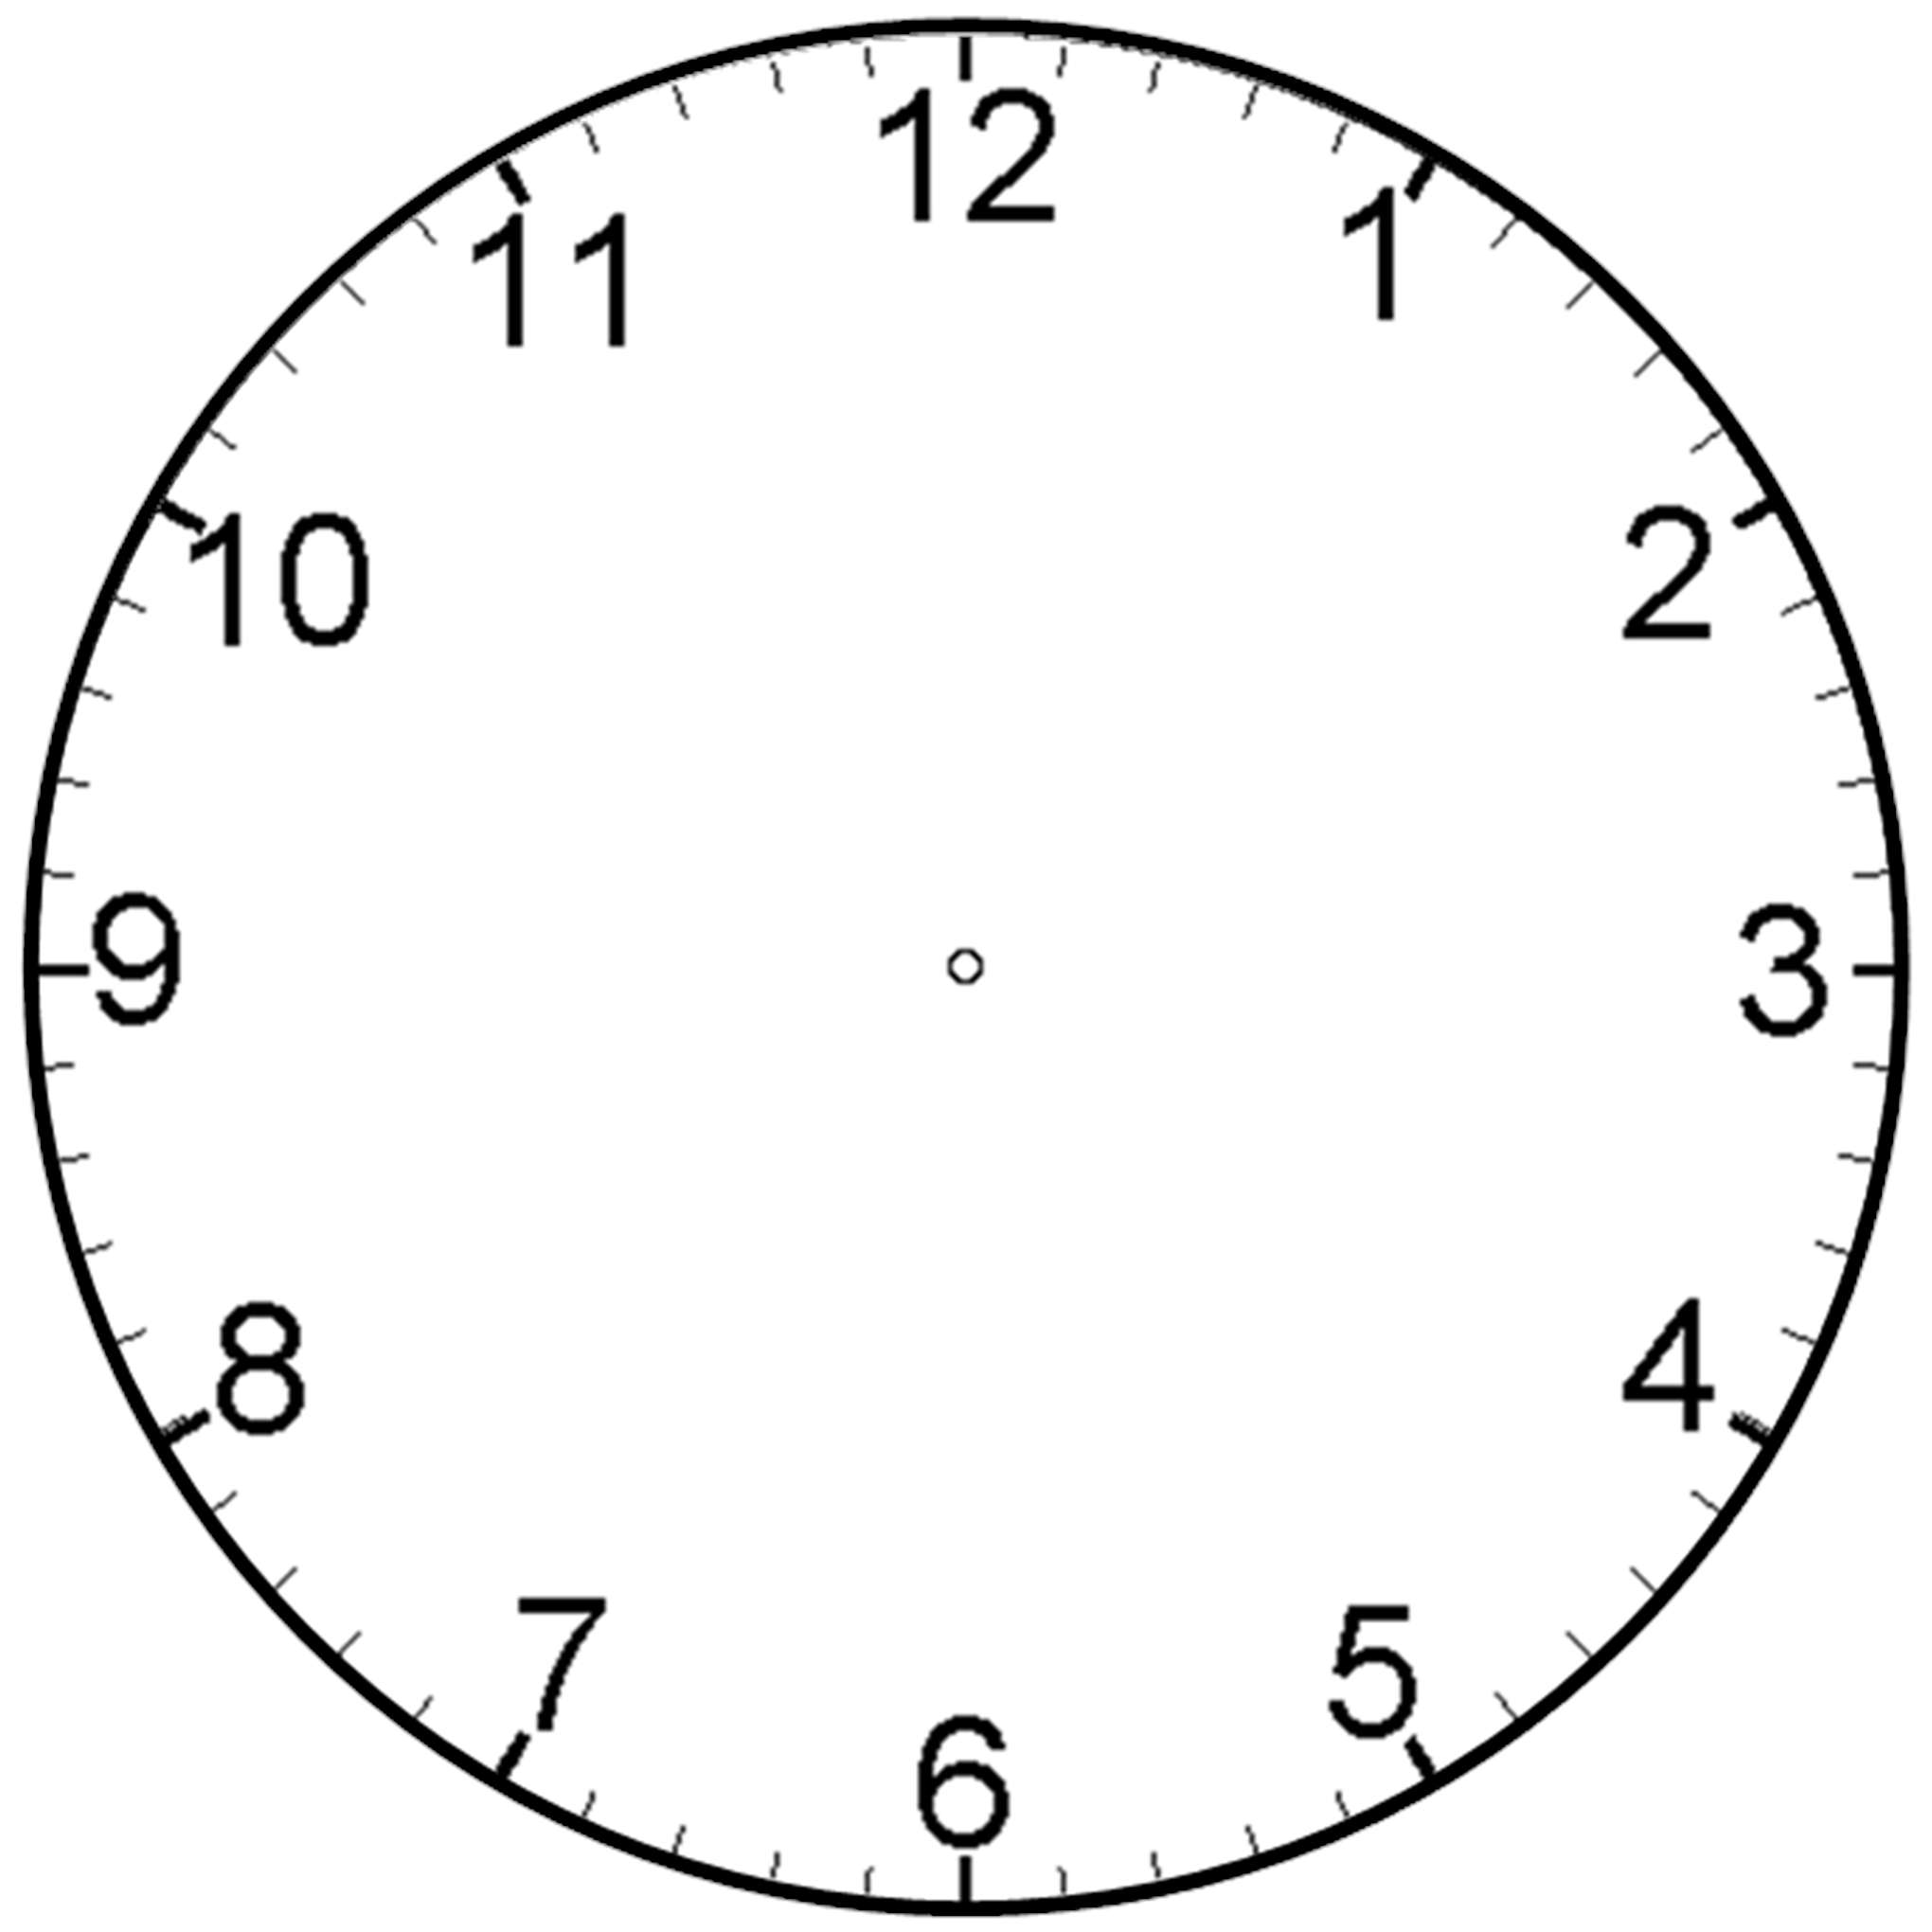 Free Blank Clock Face Printable, Download Free Clip Art